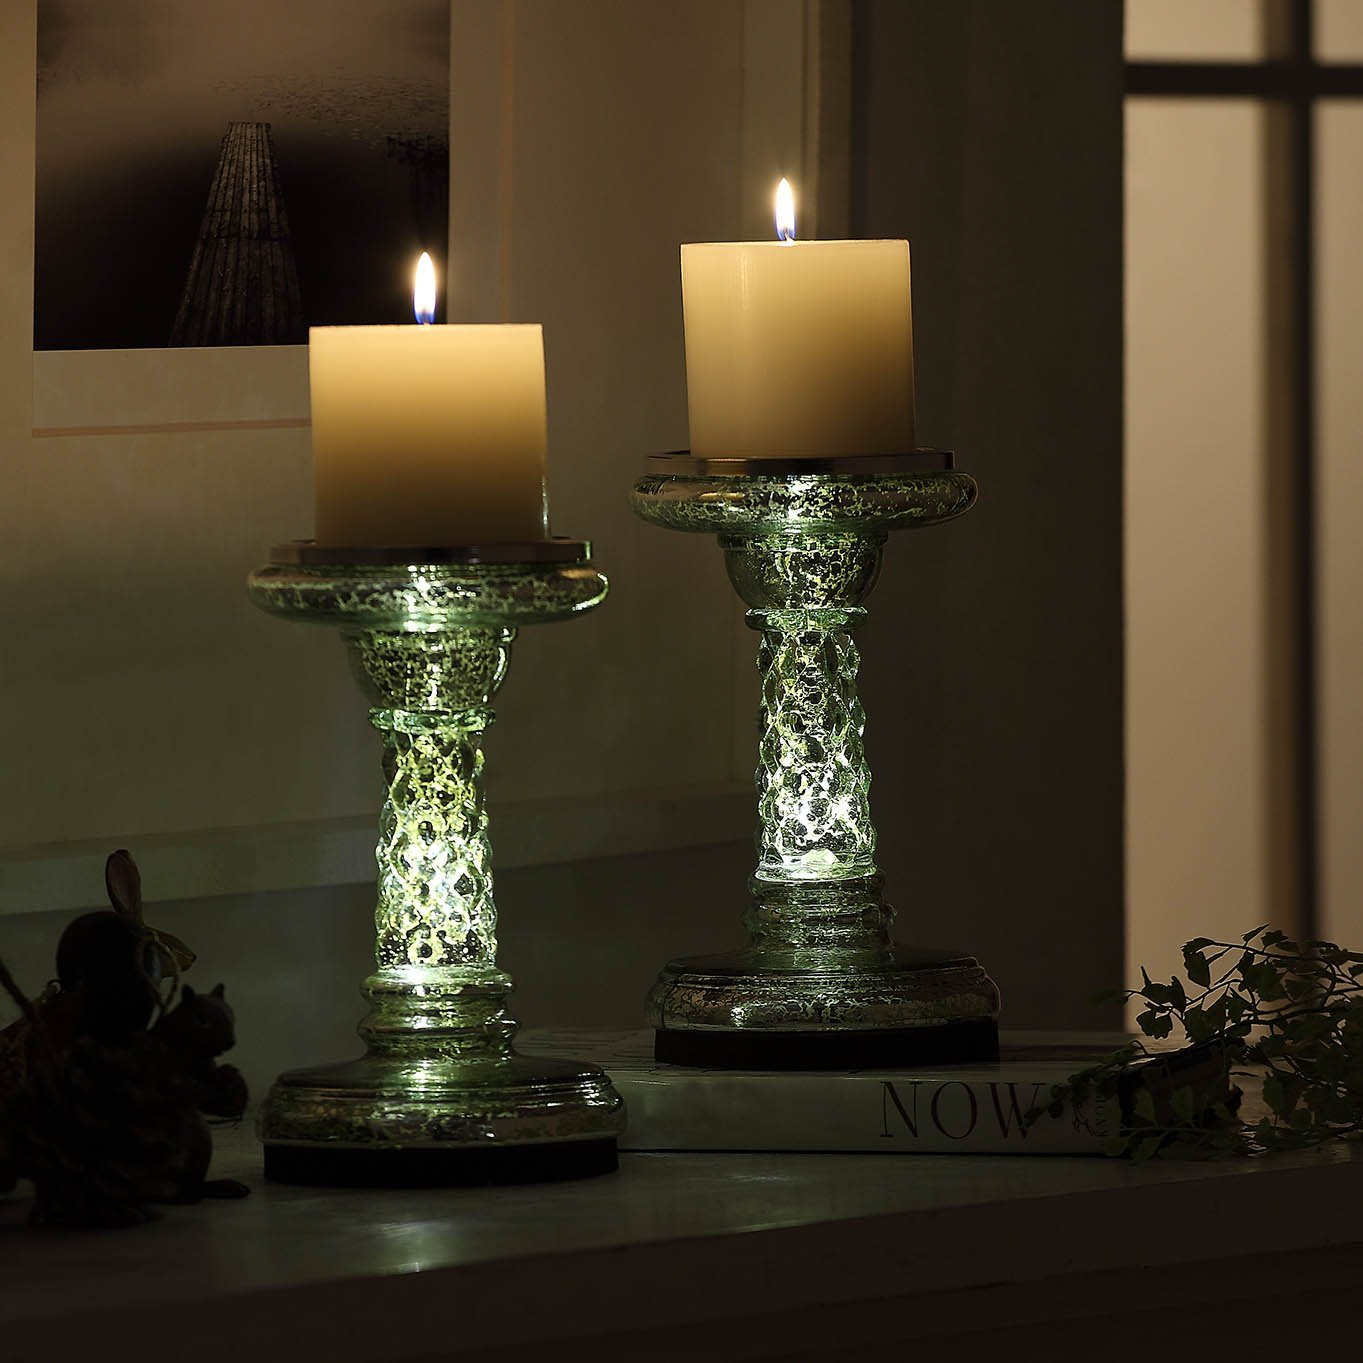 7 8 Illuminated Led Candle Holders With Timer Mode Set Of 2 Mercury Glass Pillar Candle Holder Pedestal For Antique Home And Table Decor Silver Walmart Com Walmart Com